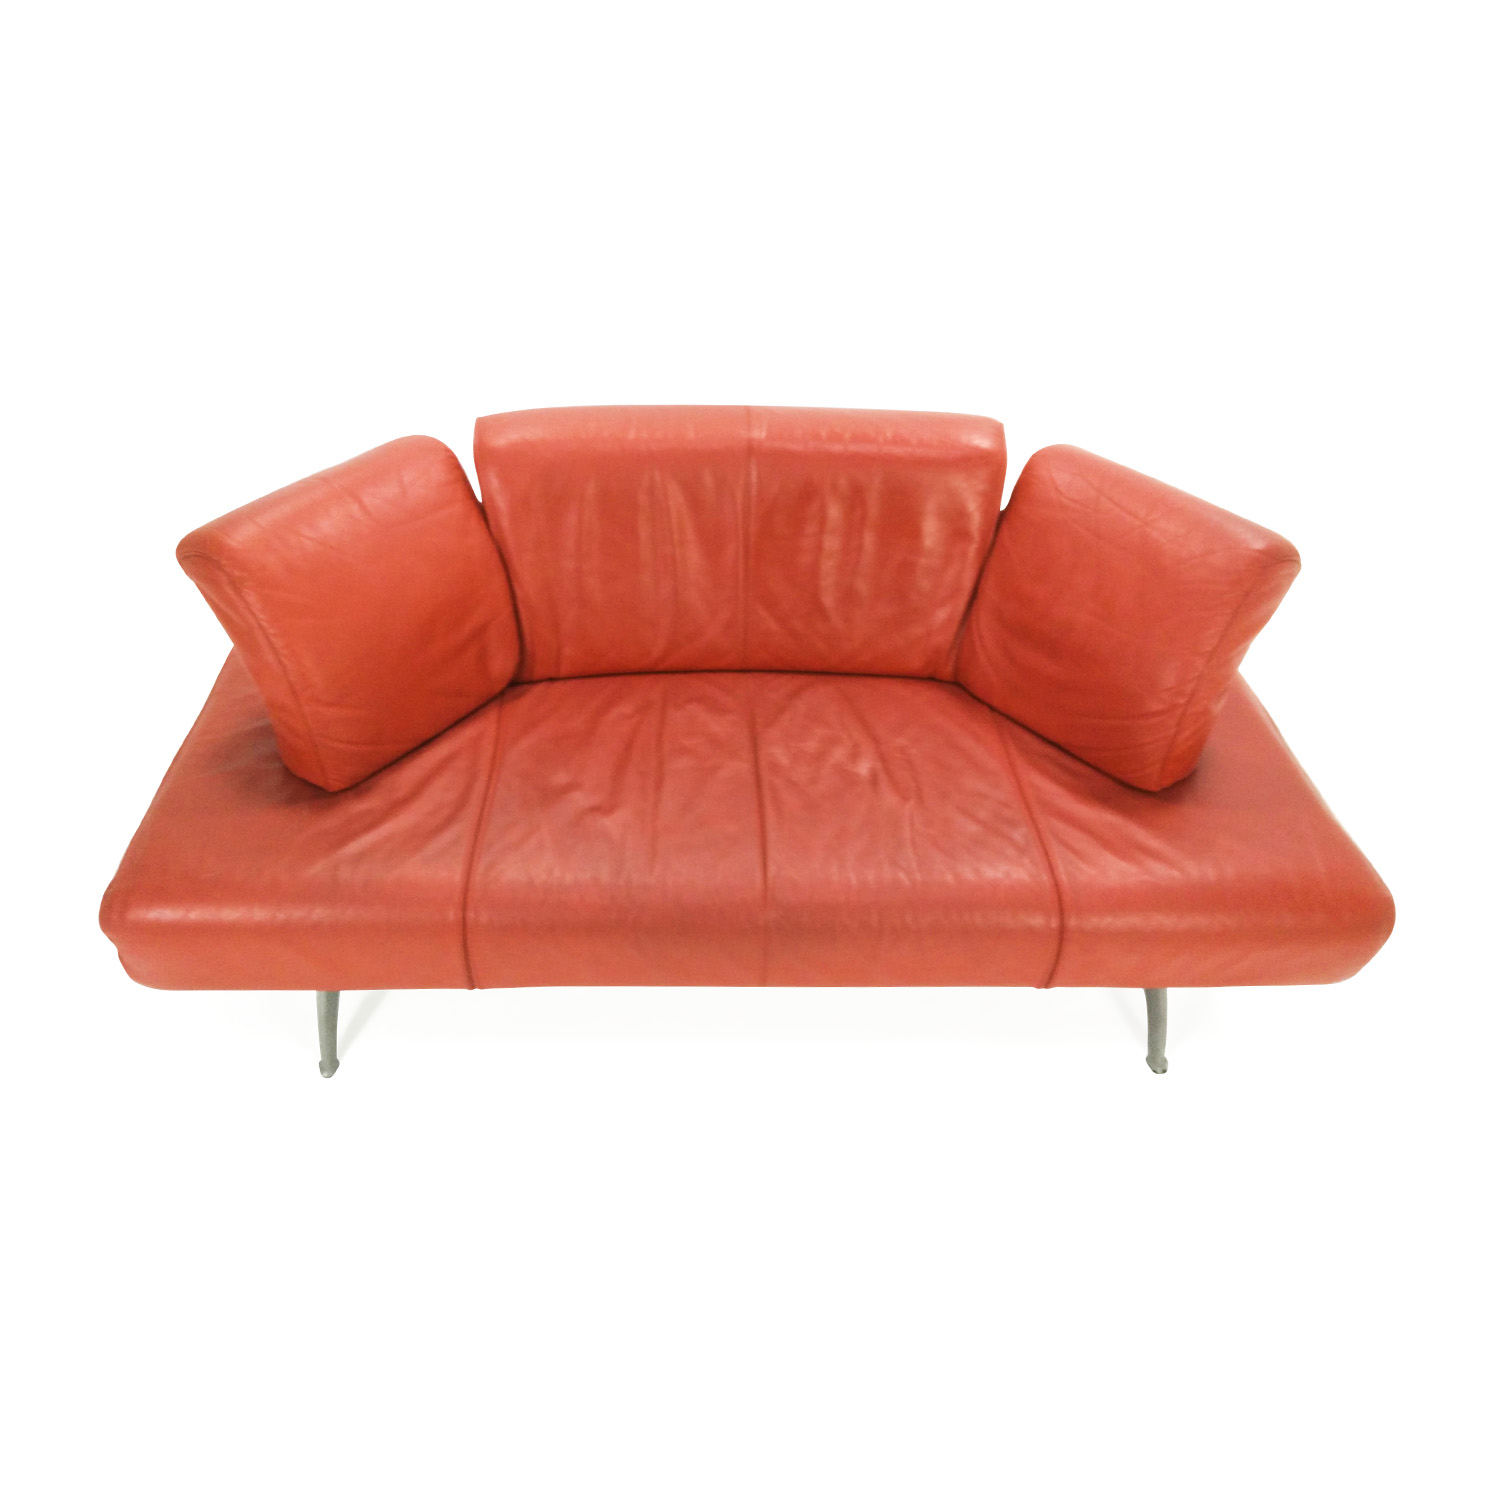 82% OFF - Team by Wellis Team by Wellis Red Leather Sofa / Sofas